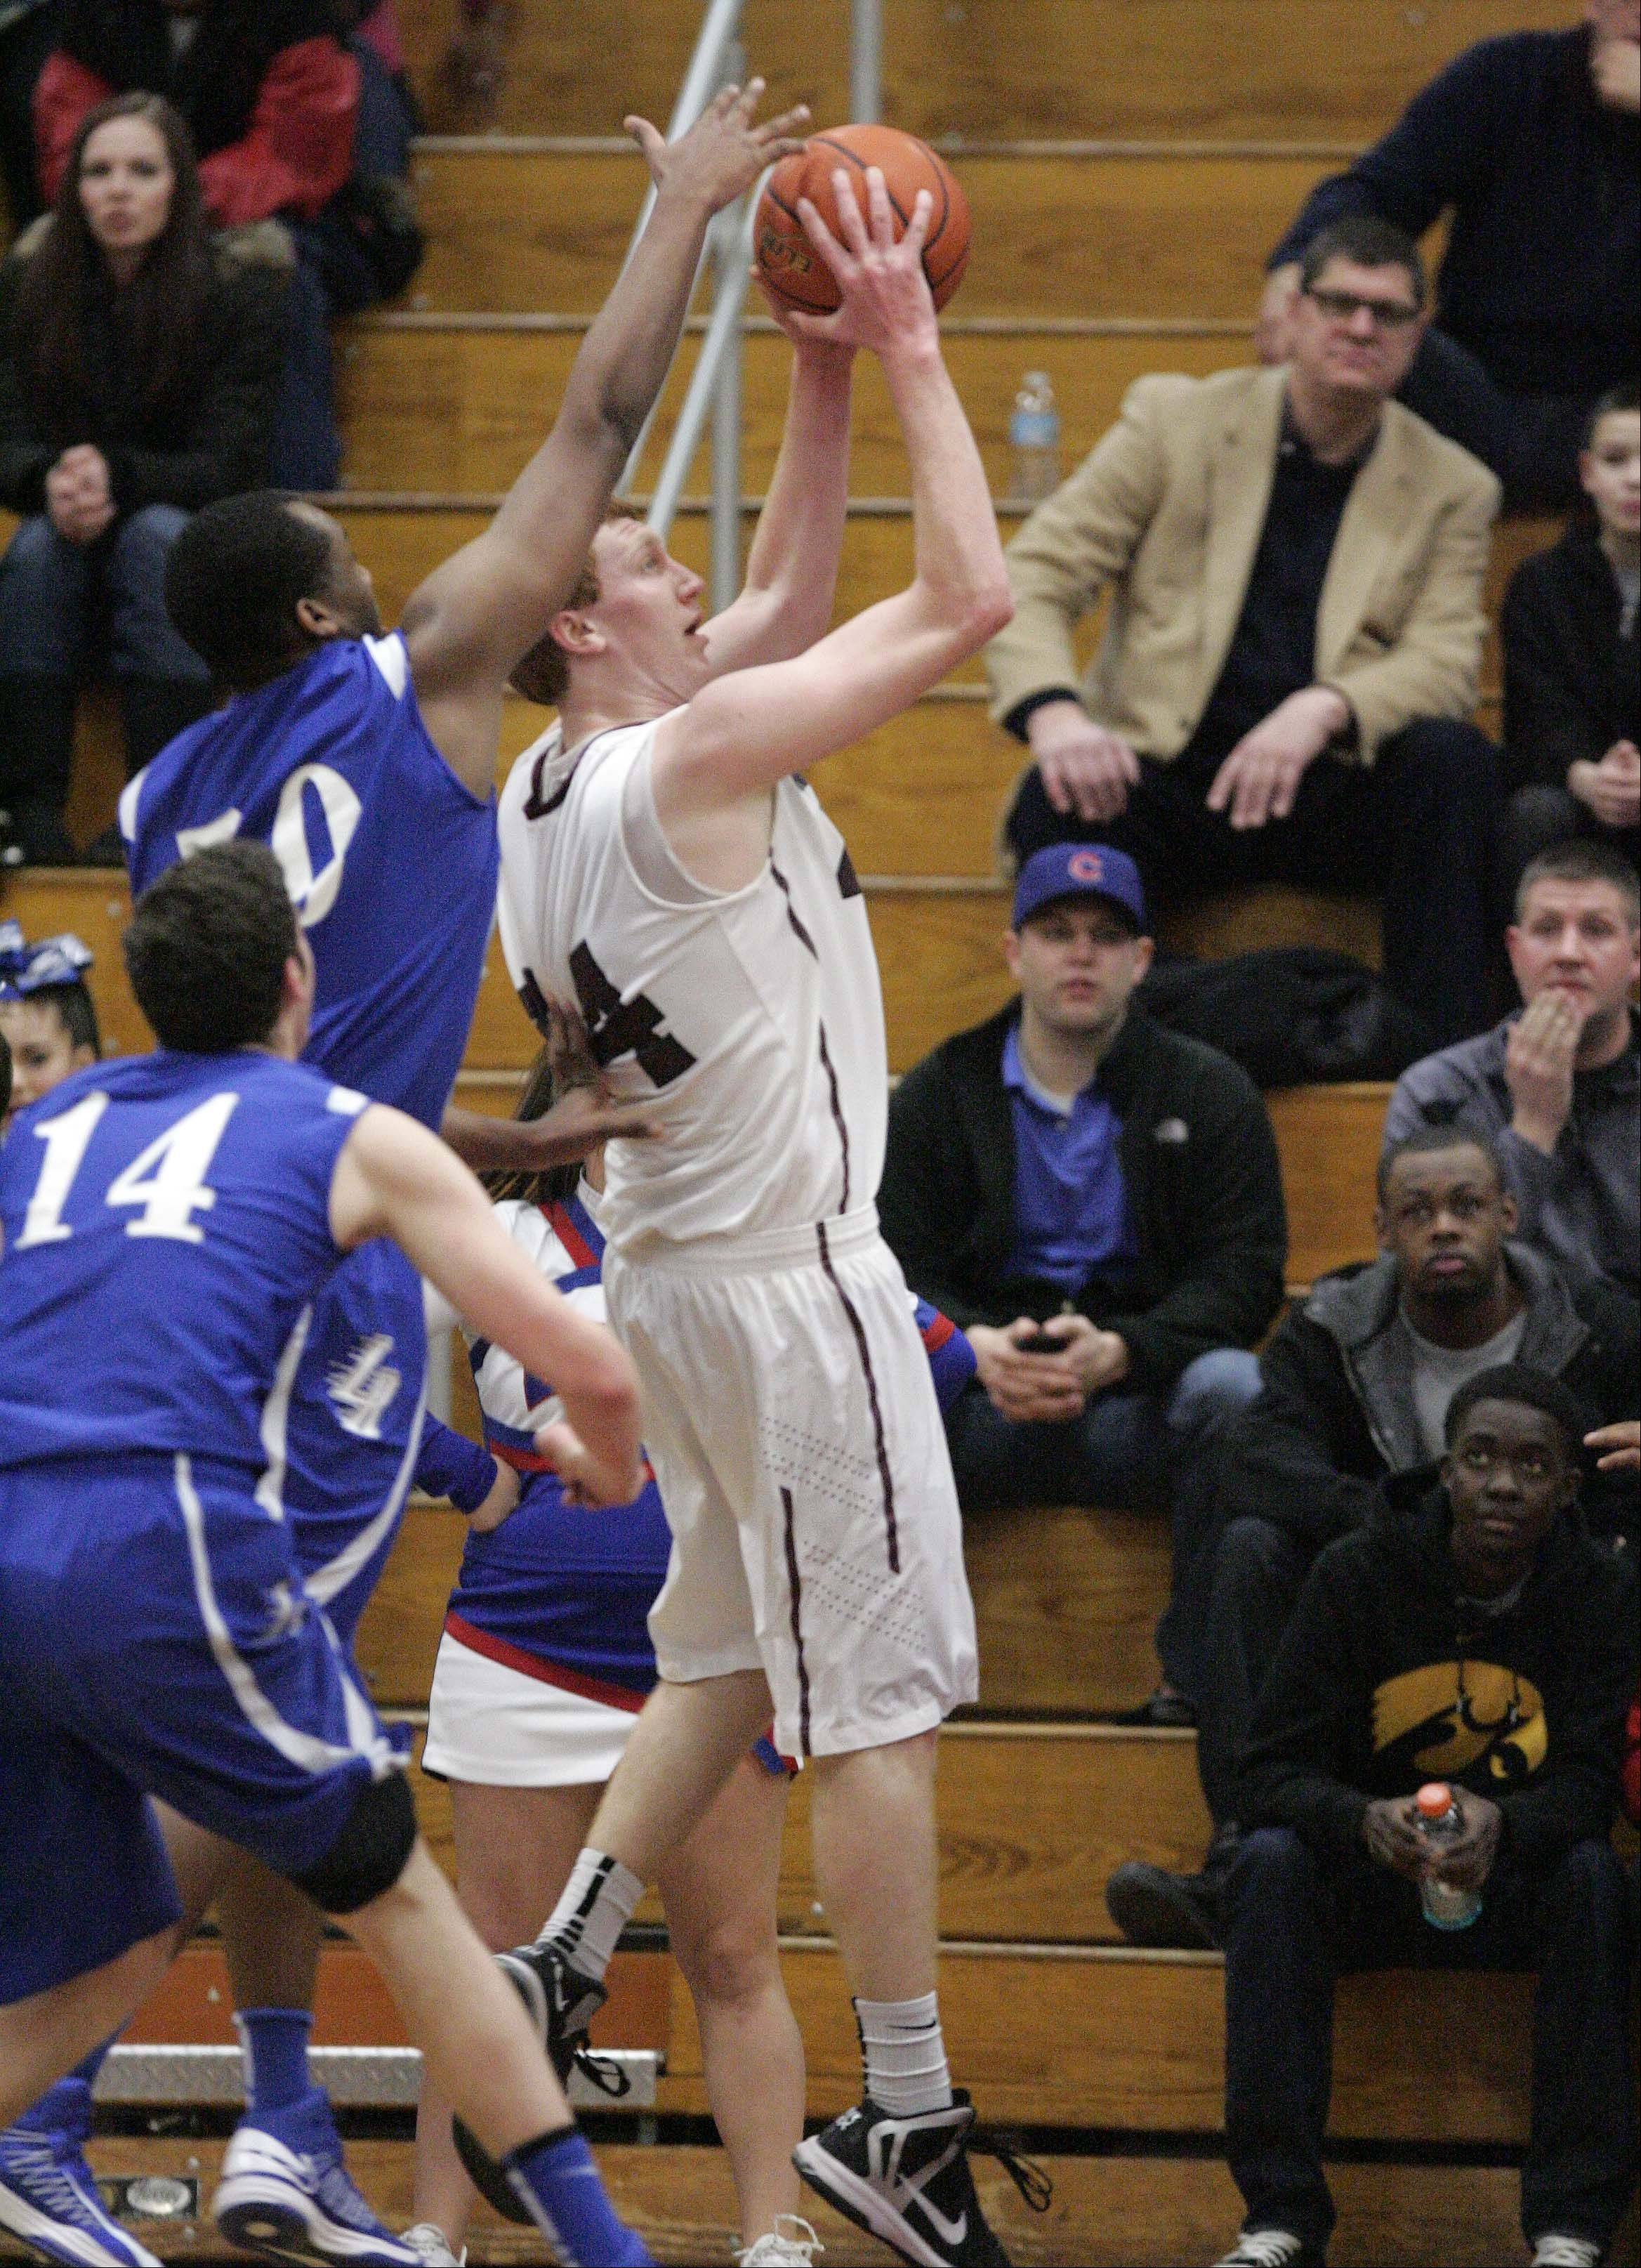 Larkin's Daniel McFadden (50) tries to get a hand on Elgin post Eric Sedlack's shot Friday night at Chesbrough Field House.